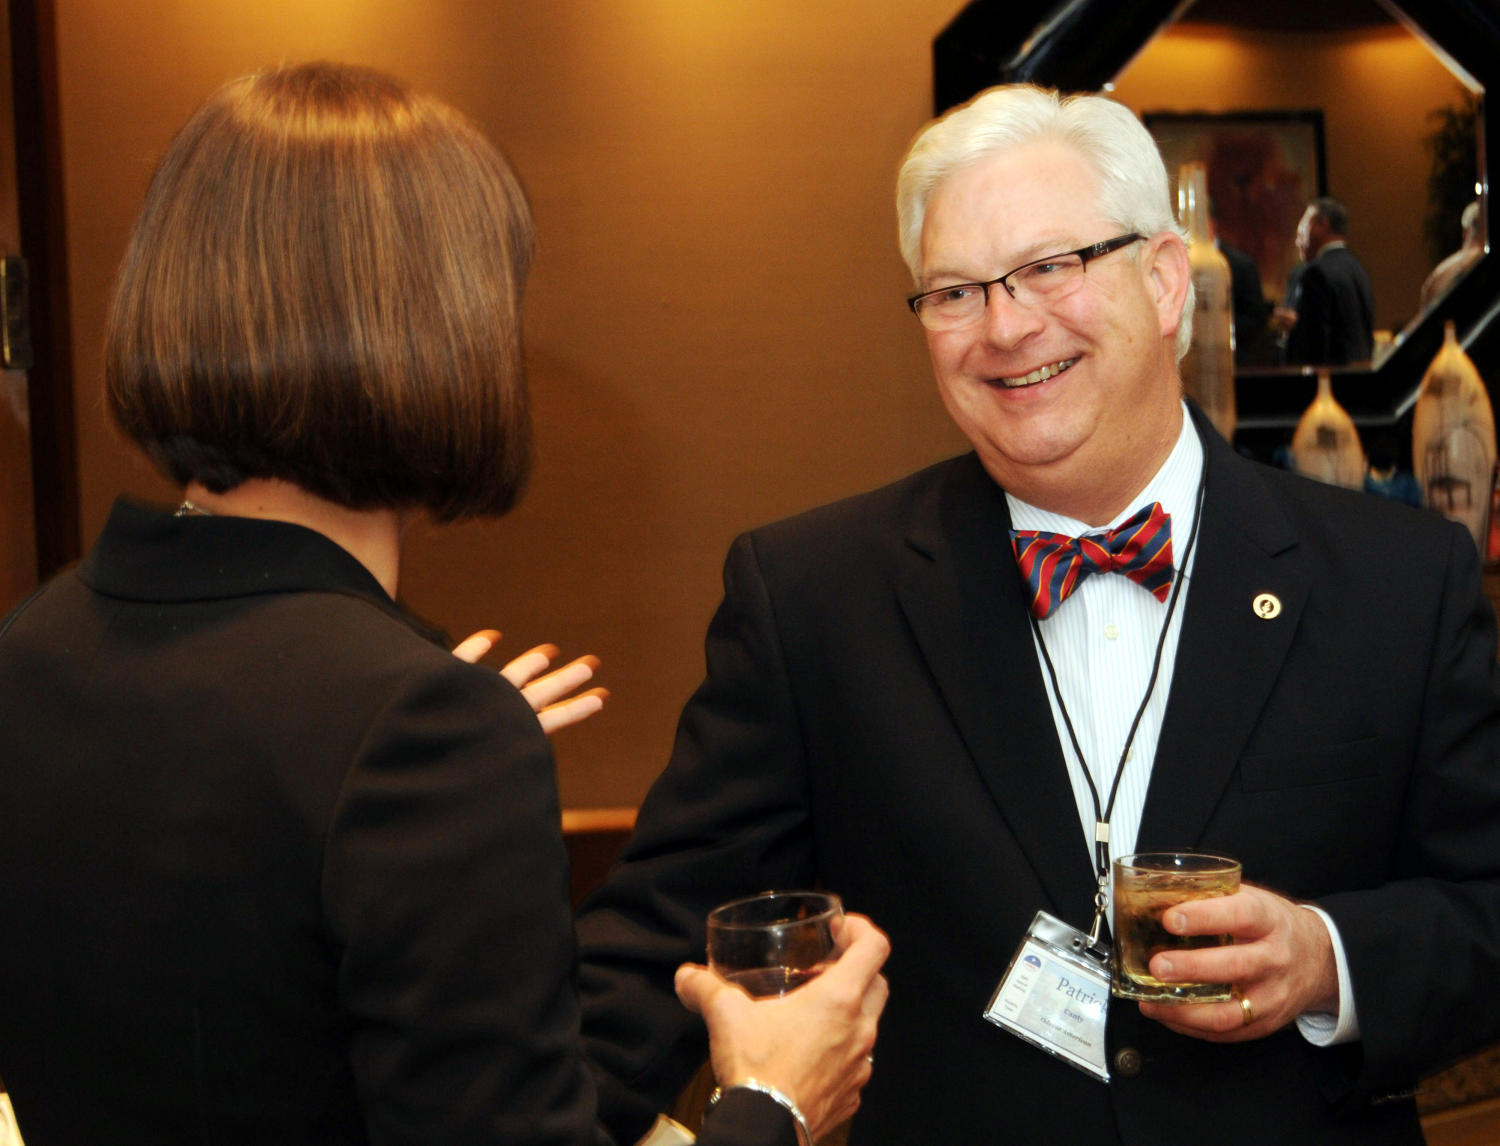 [Patrick Canty chatting at TDNA reception], Photograph of Patrick Canty (right) chatting with an unidentified woman and drinking refreshments during a reception at the 2010 Texas Daily Newspaper Association annual meeting held in Houston, Texas.,